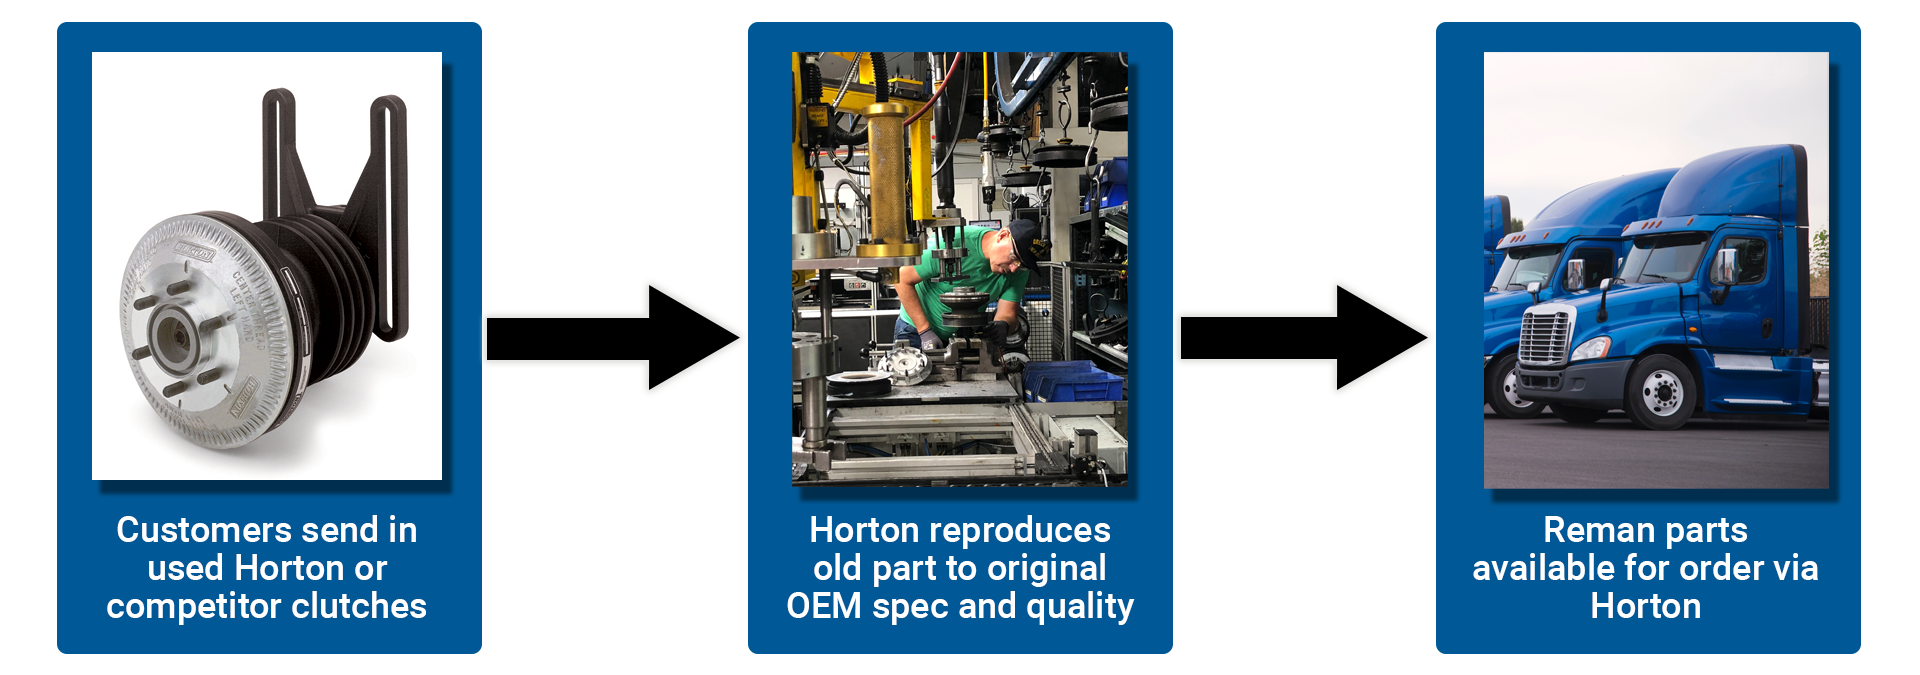 Horton's remanufacturing process includes qualifying old cores, reproducing them to OEM spec and making them available for distribution.